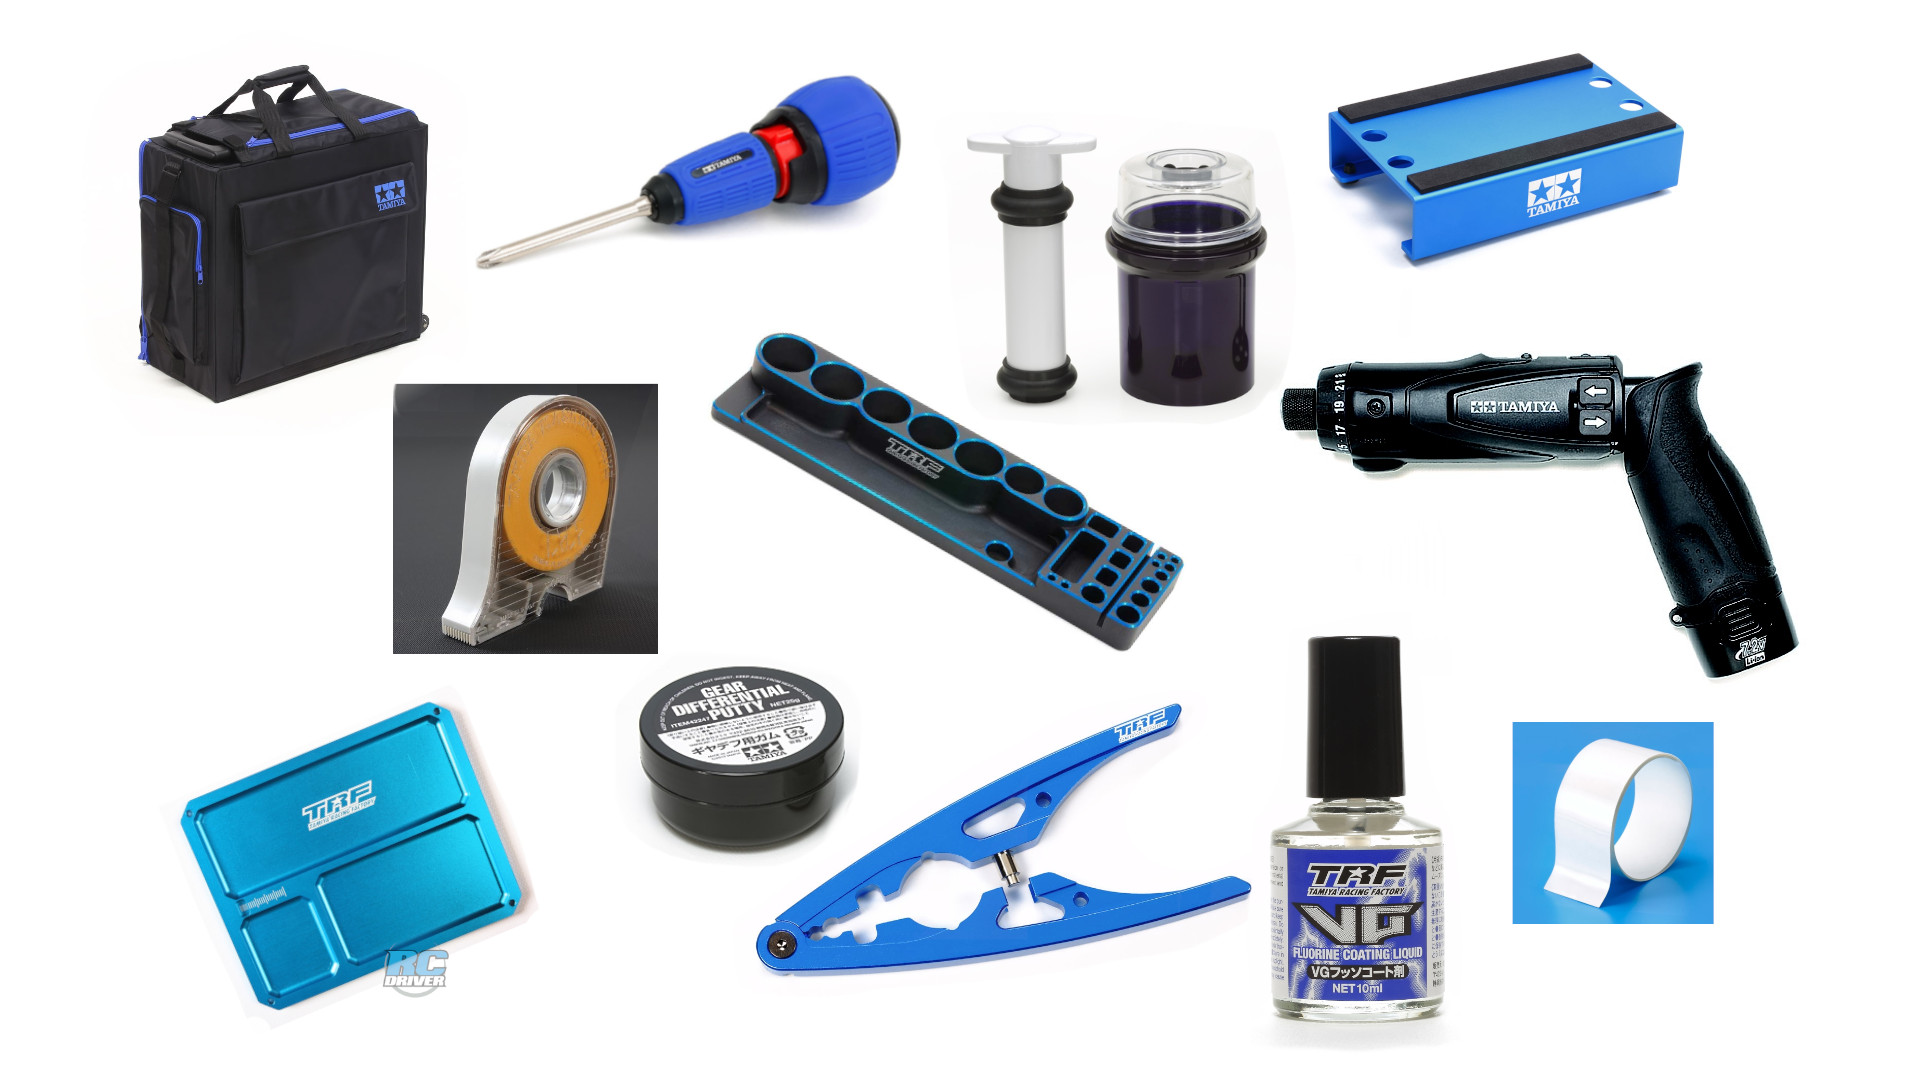 12 Super Useful Tamiya Items That You Didn't Know About